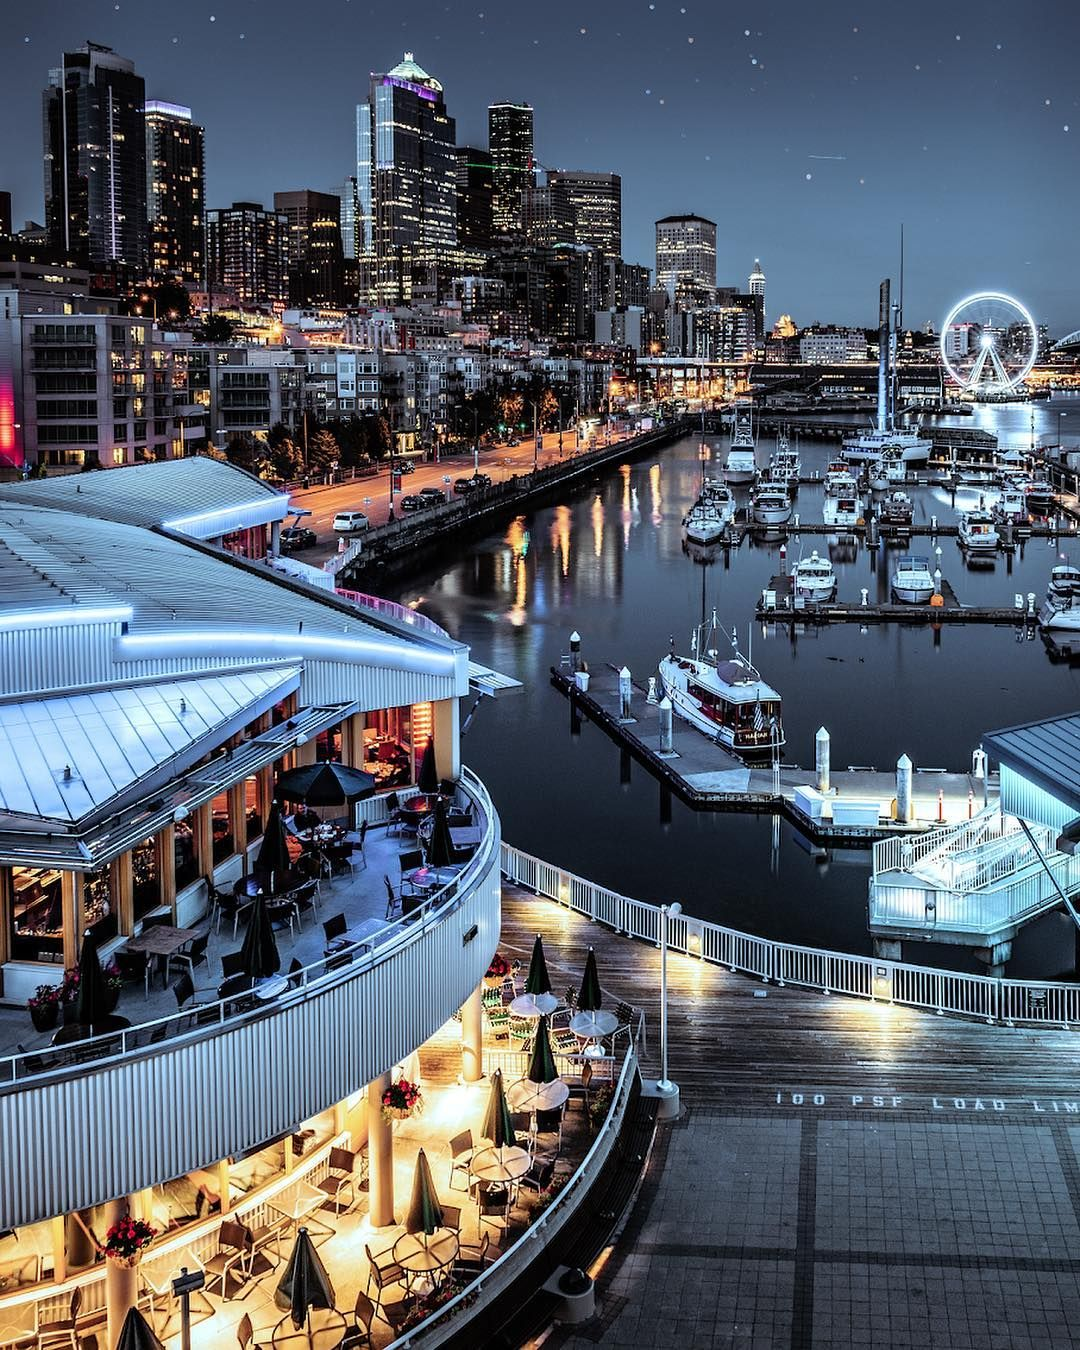 Seattle Event Calendar 2019 Seattle Events Calendar | Visit Seattle | Seattle Events in 2019